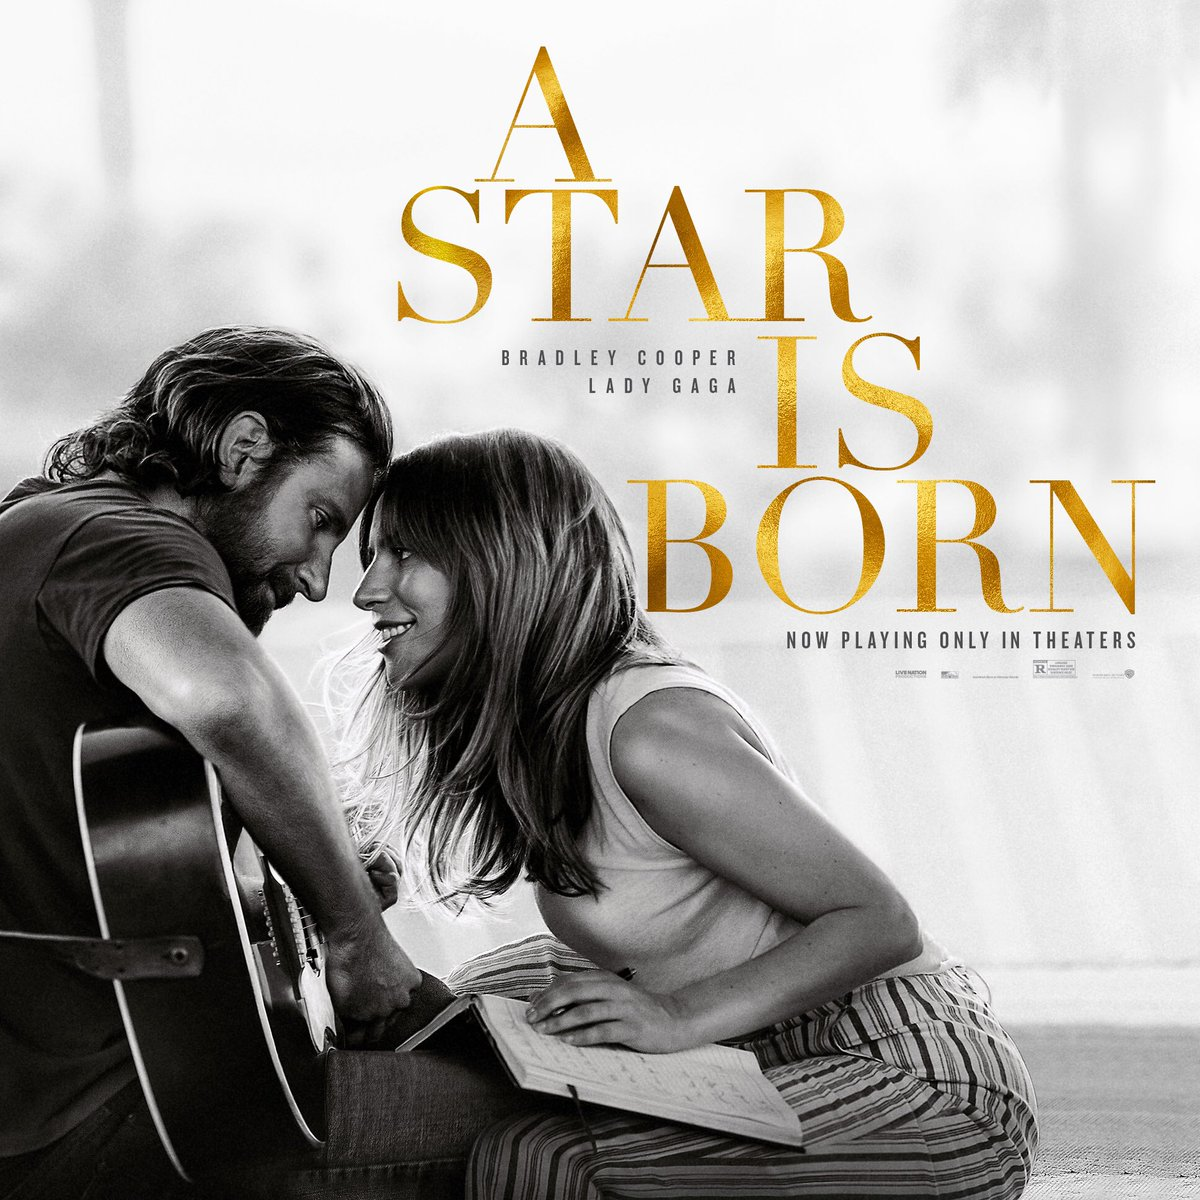 EP340: A Star is Born, Predator, Shape of Water, Jurassic World 2 Reviews, The Mule, Vice, Creed 2, Holmes and Watson Trailers